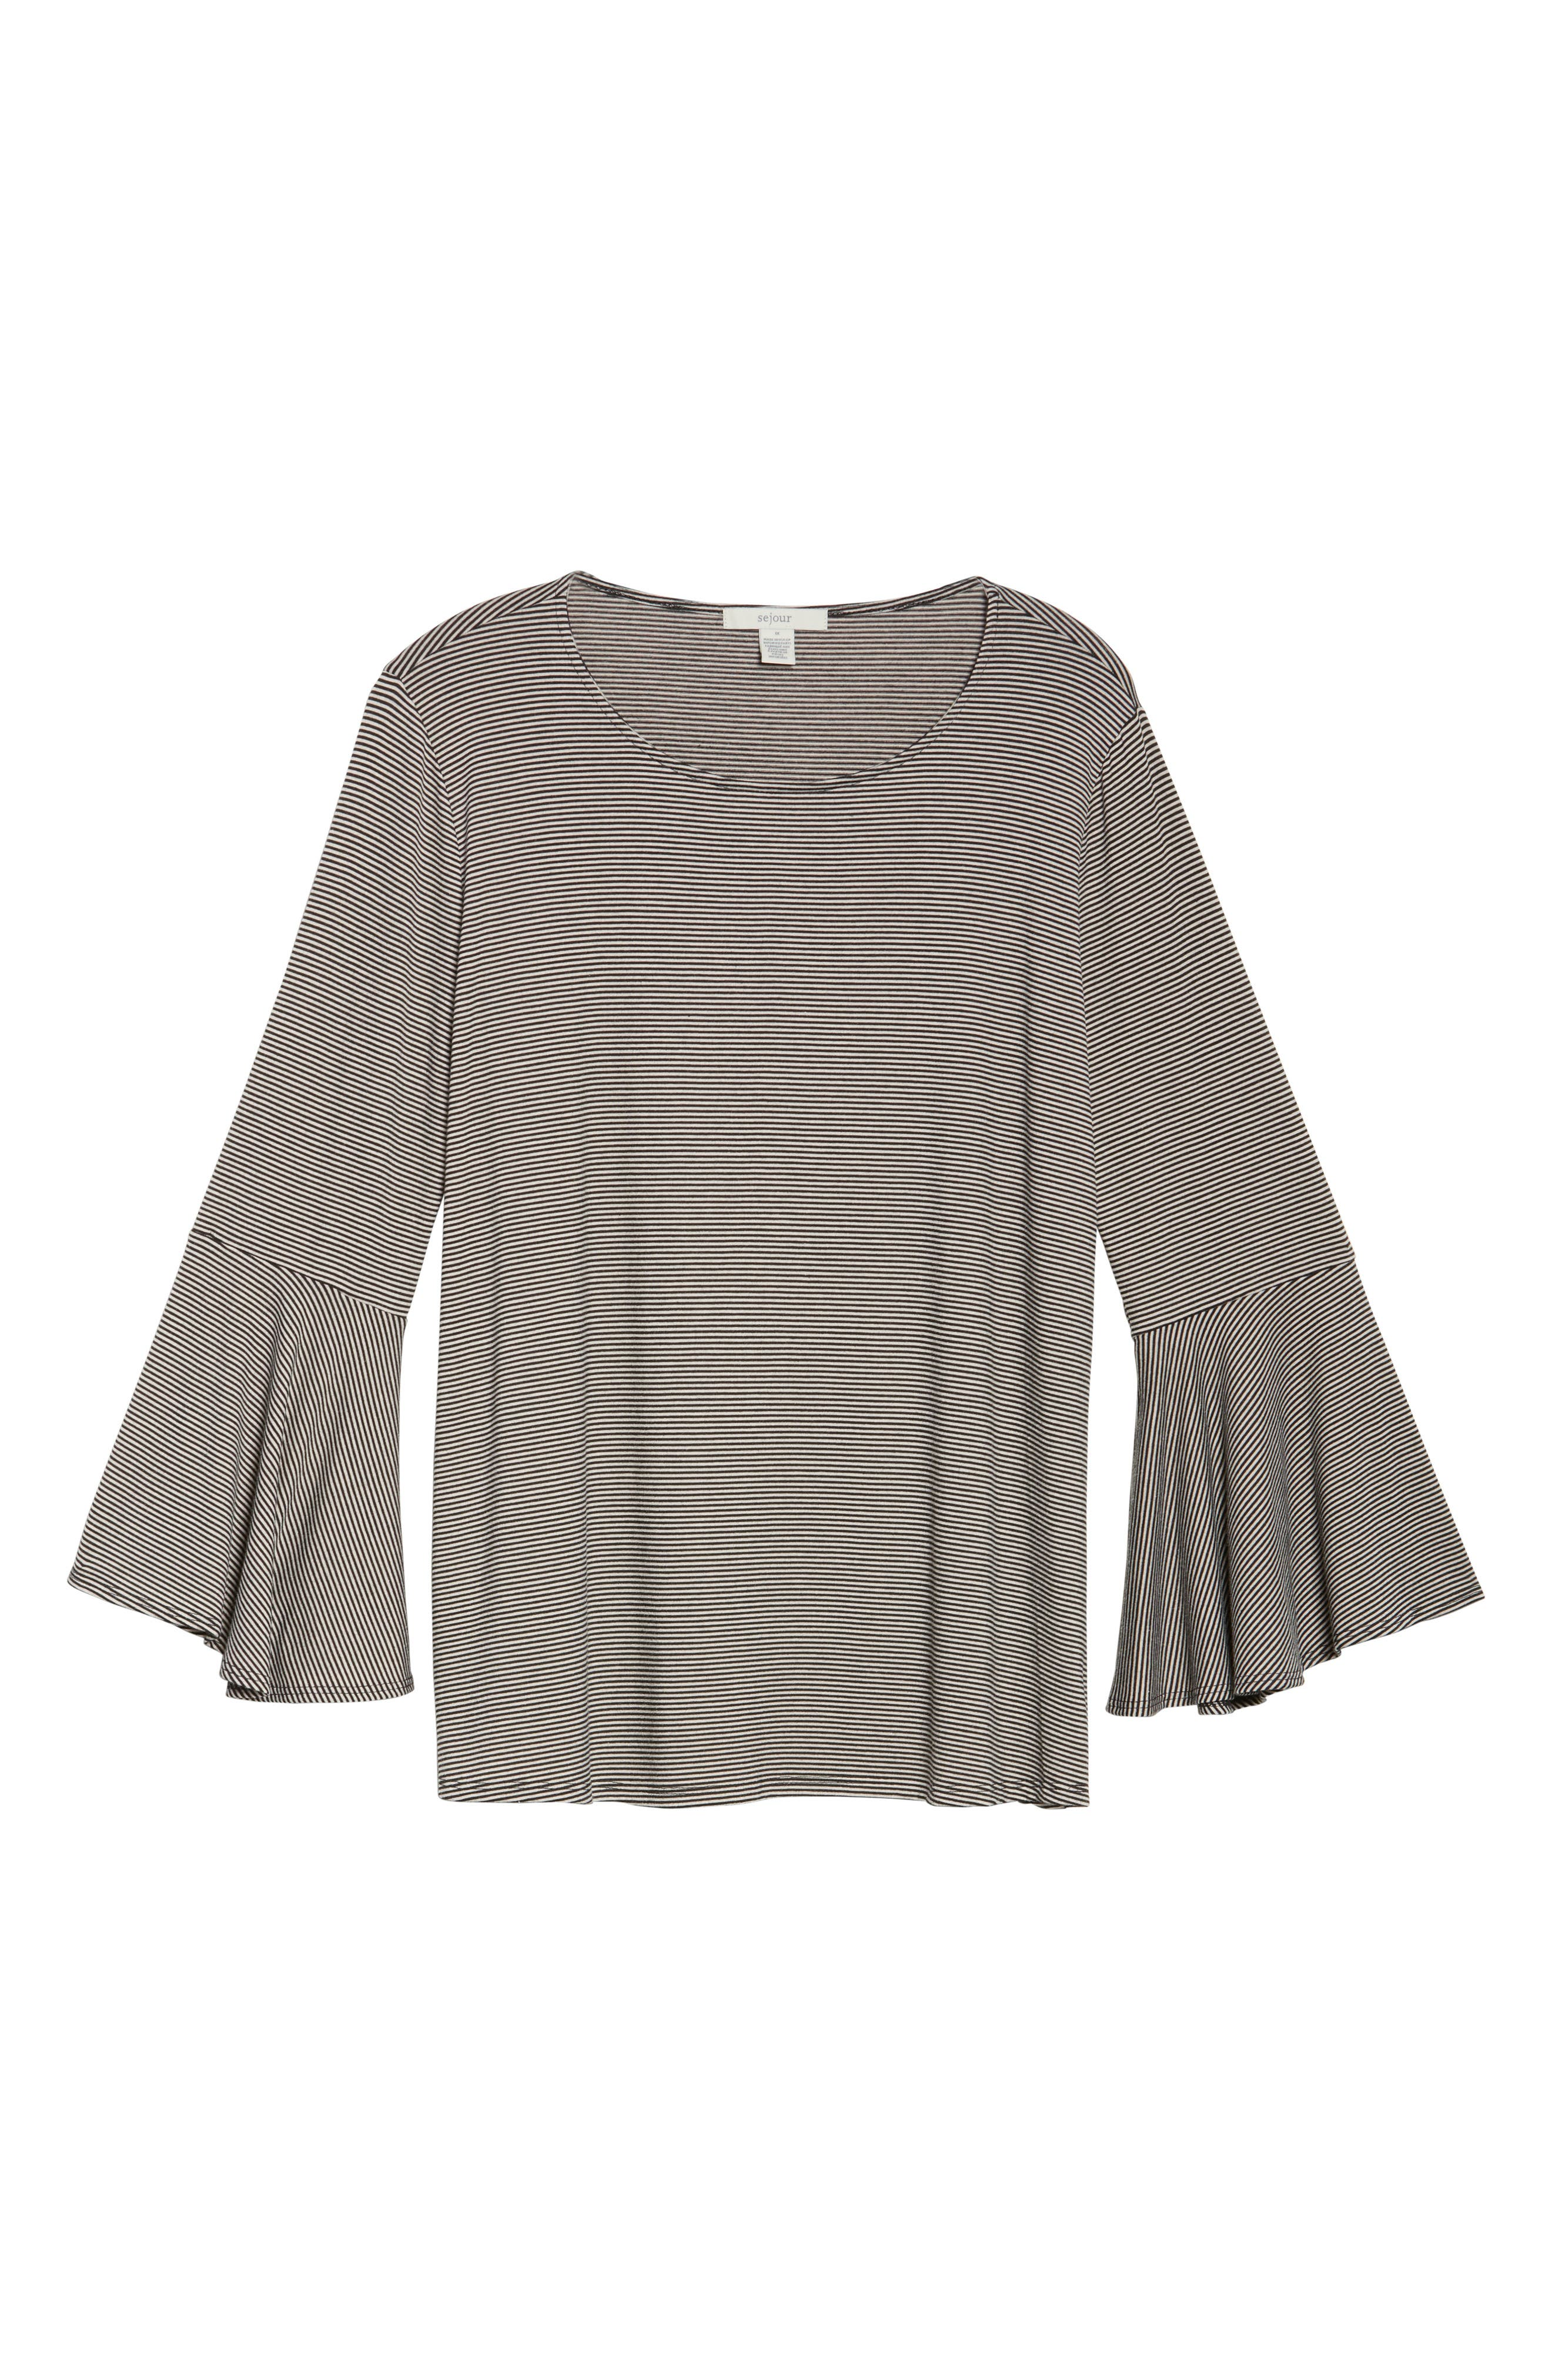 Bell Sleeve Top,                             Alternate thumbnail 4, color,                             Charcoal Heather- Black Stripe